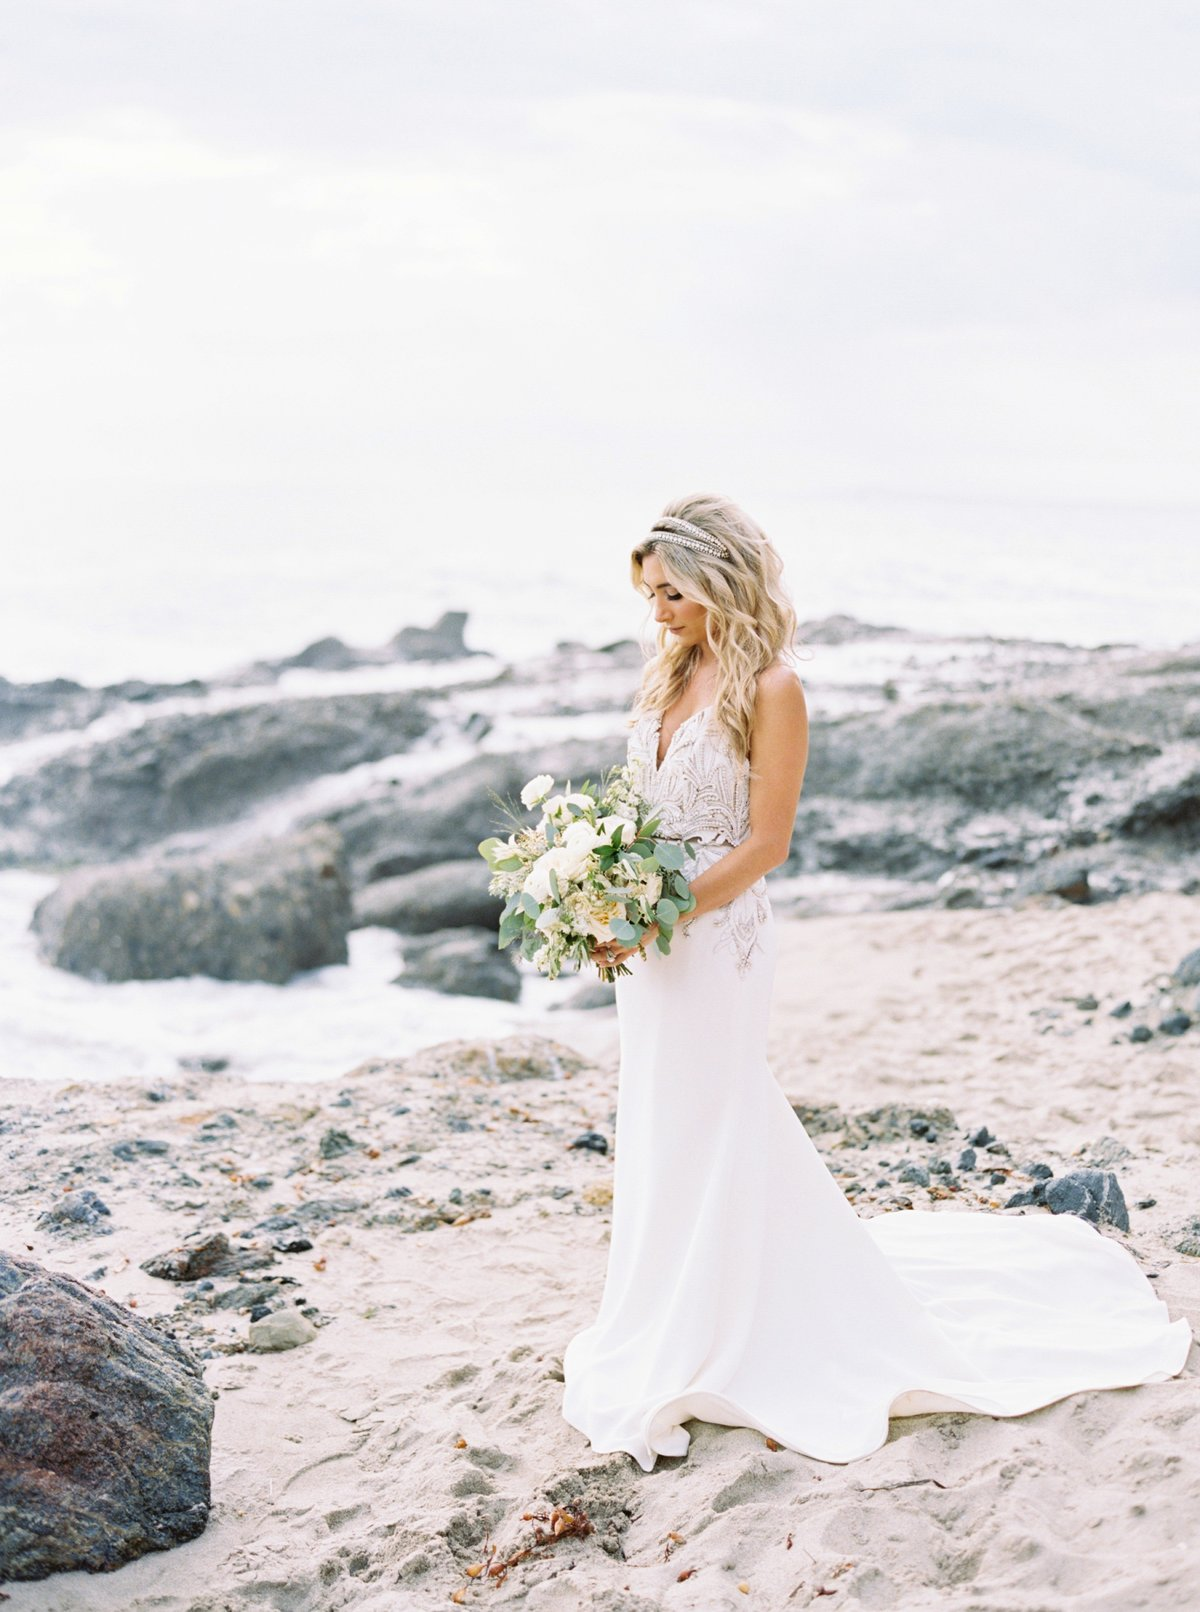 nicoleclareyphotography_evan+jeff_laguna beach_wedding_0012